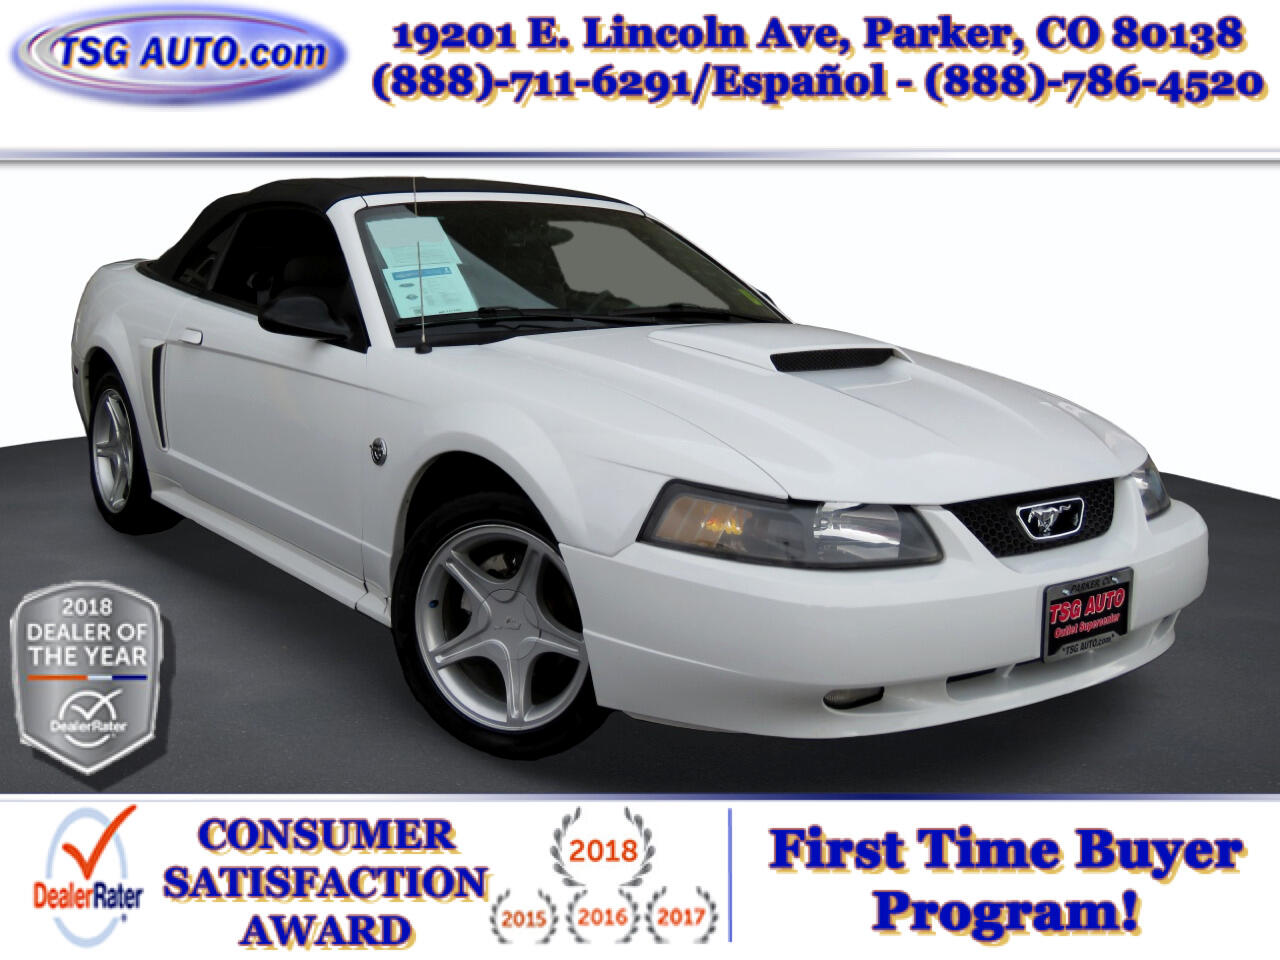 Ford Mustang 2dr Conv GT Deluxe 2004